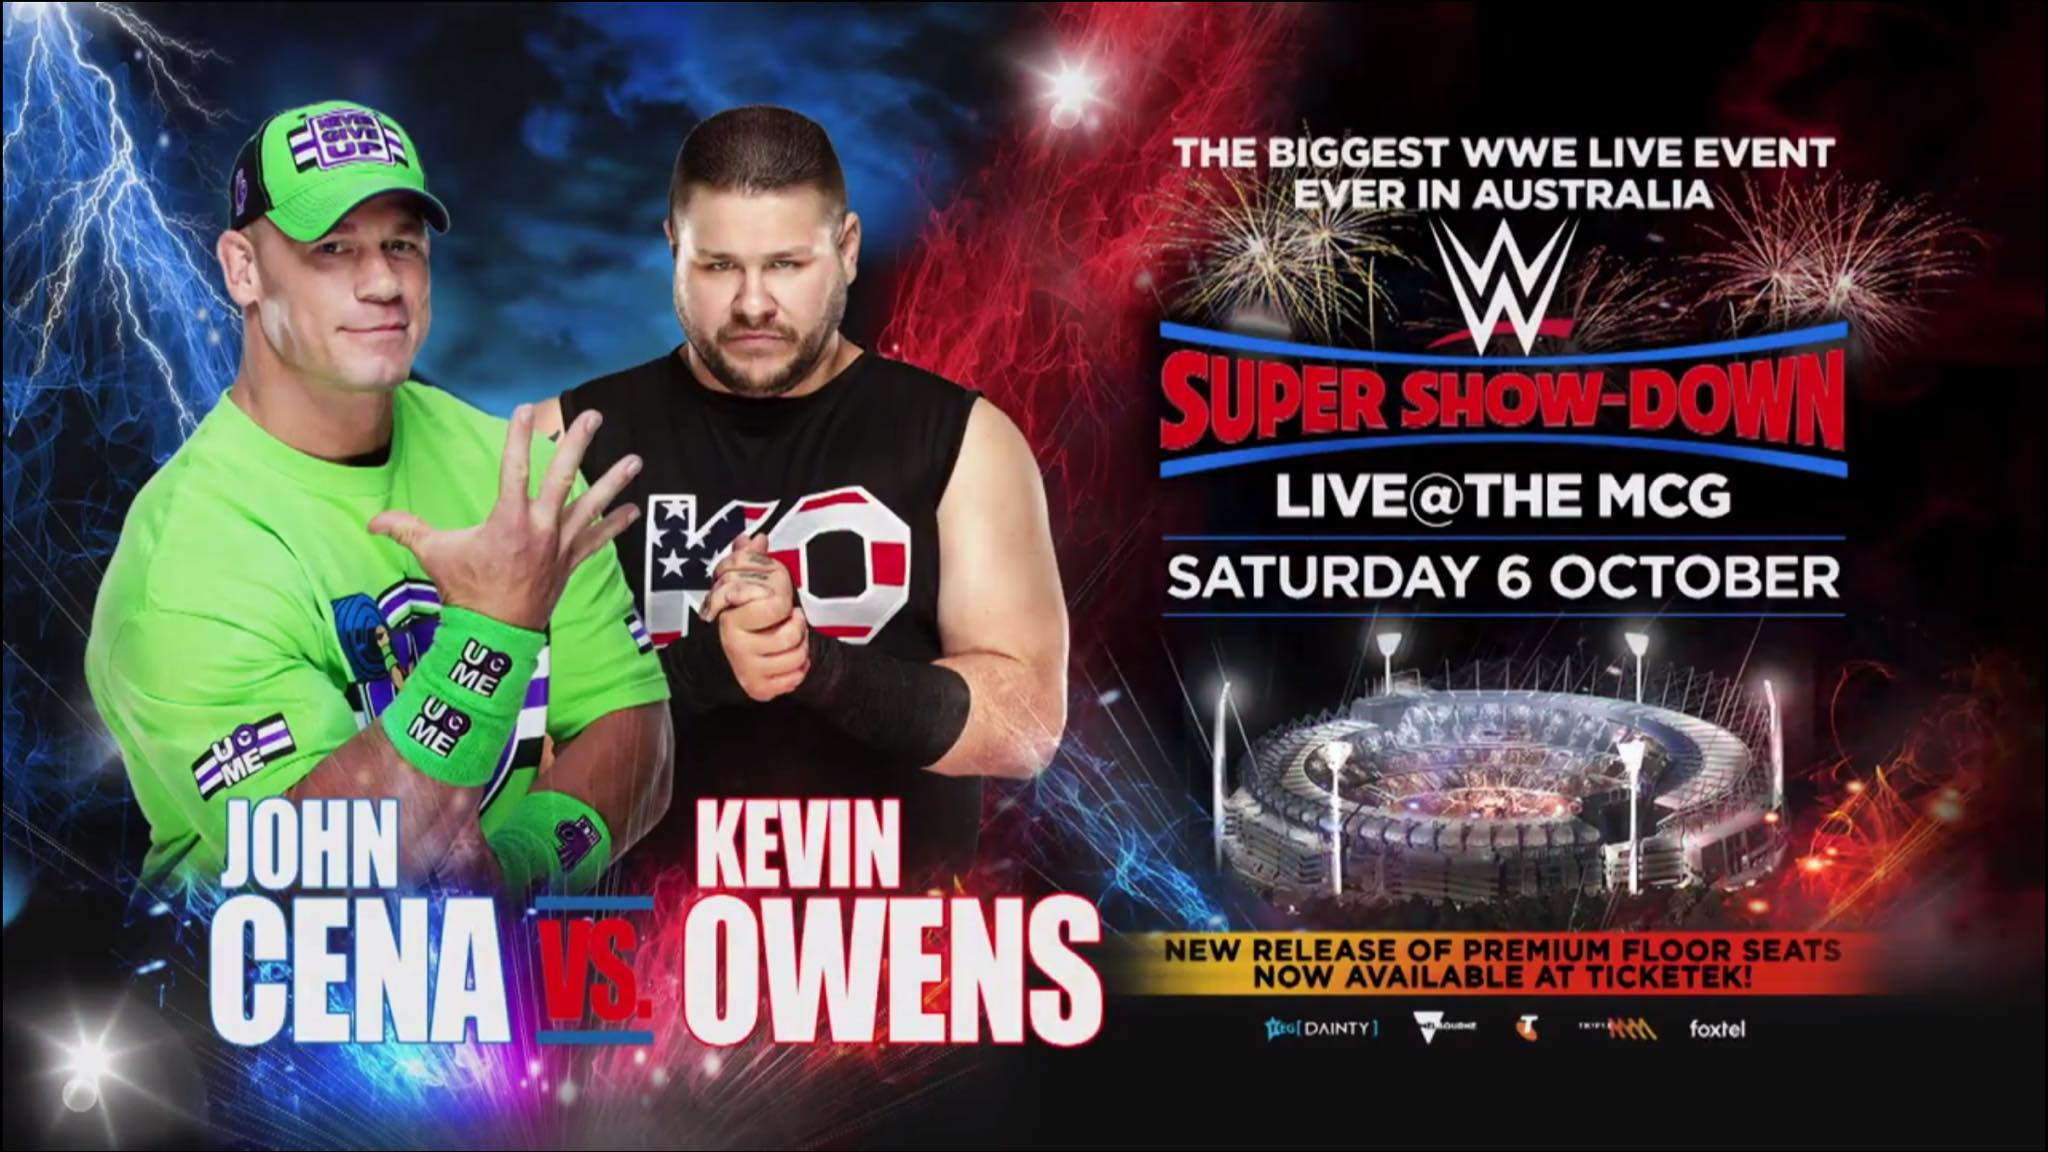 John Cena vs. Kevin Owens - WWE Super Show-Down